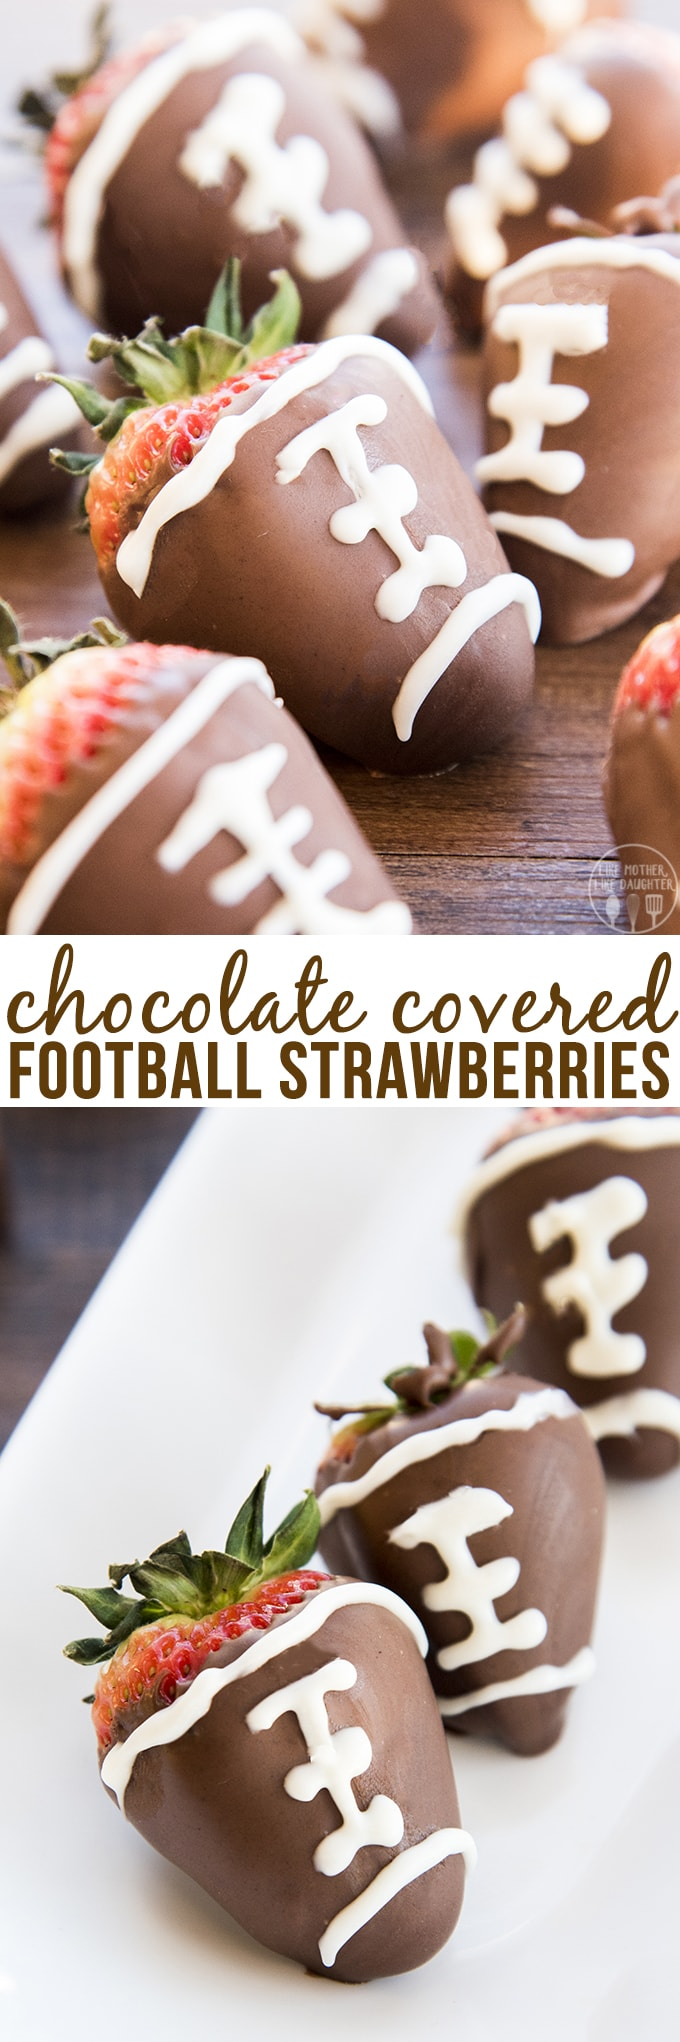 Chocolate covered football strawberries are not only easy to make, they're also delicious to eat and so cute for a football watching party!